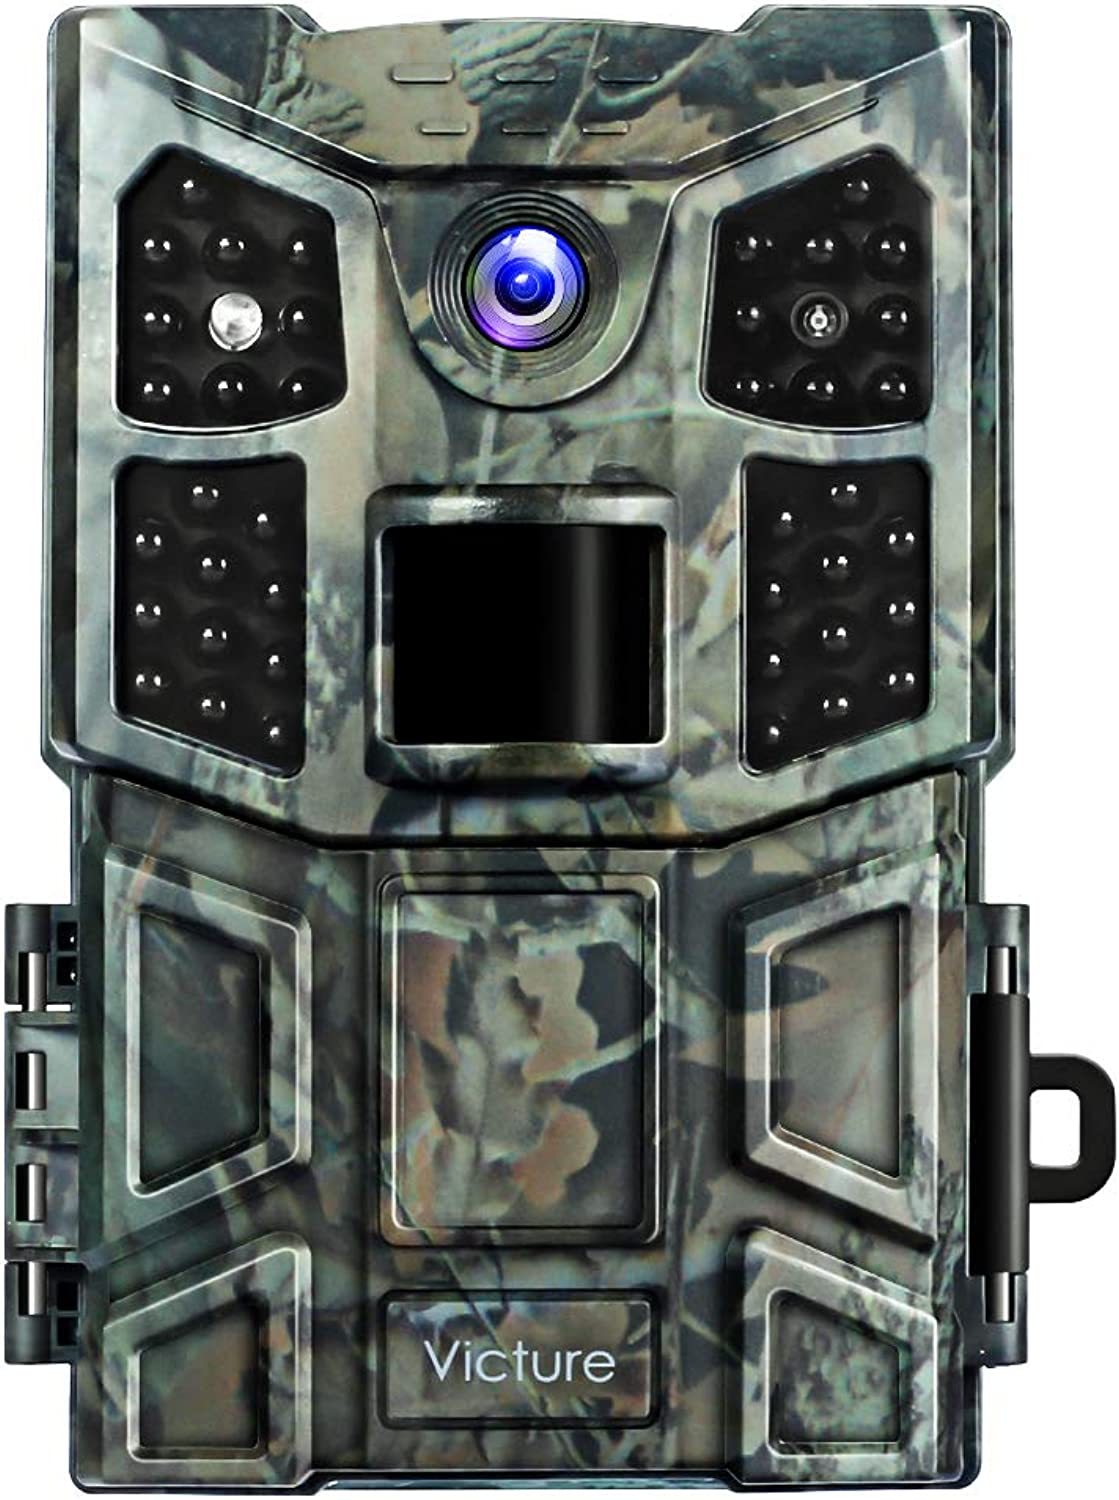 Victure Trail Camera 20MP with Night Vision Motion Activated 1080P Wildlife Game Camera No Glow with 0.2s Trigger Speed and Upgrade Waterproof Design for Outdoor Surveillance